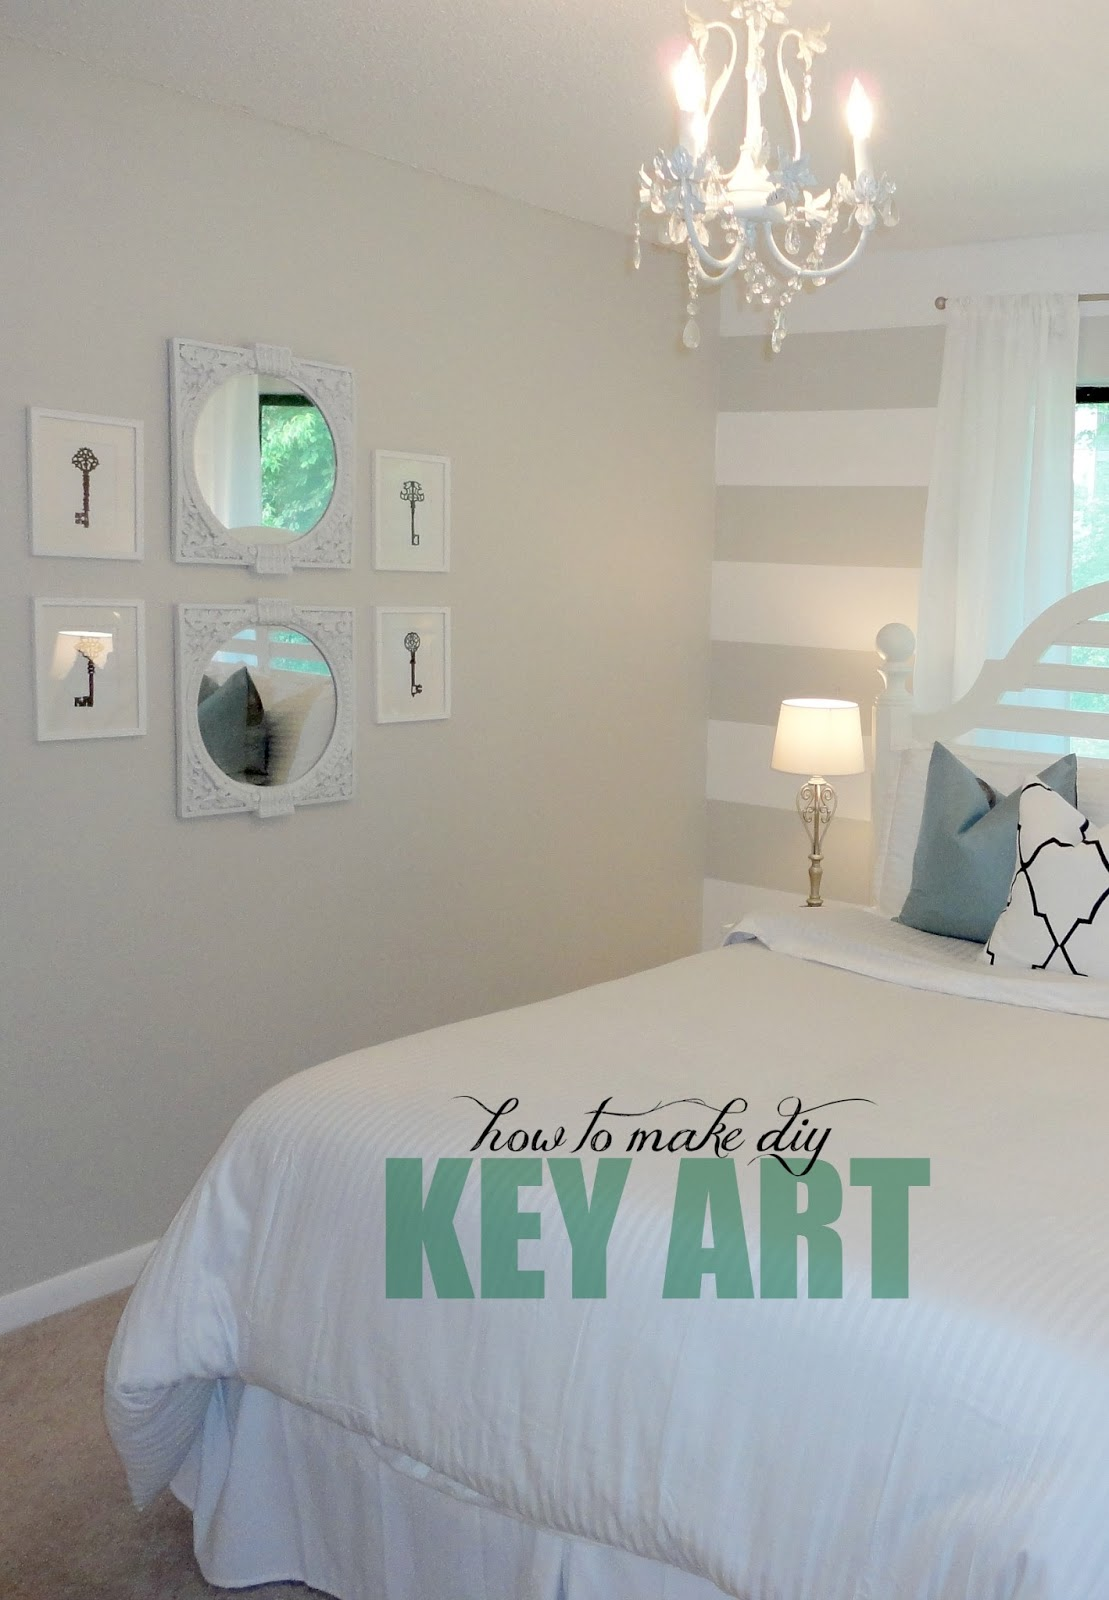 Hanging Wall Art Ideas livelovediy: 10 diy art ideas: easy ways to decorate your walls!